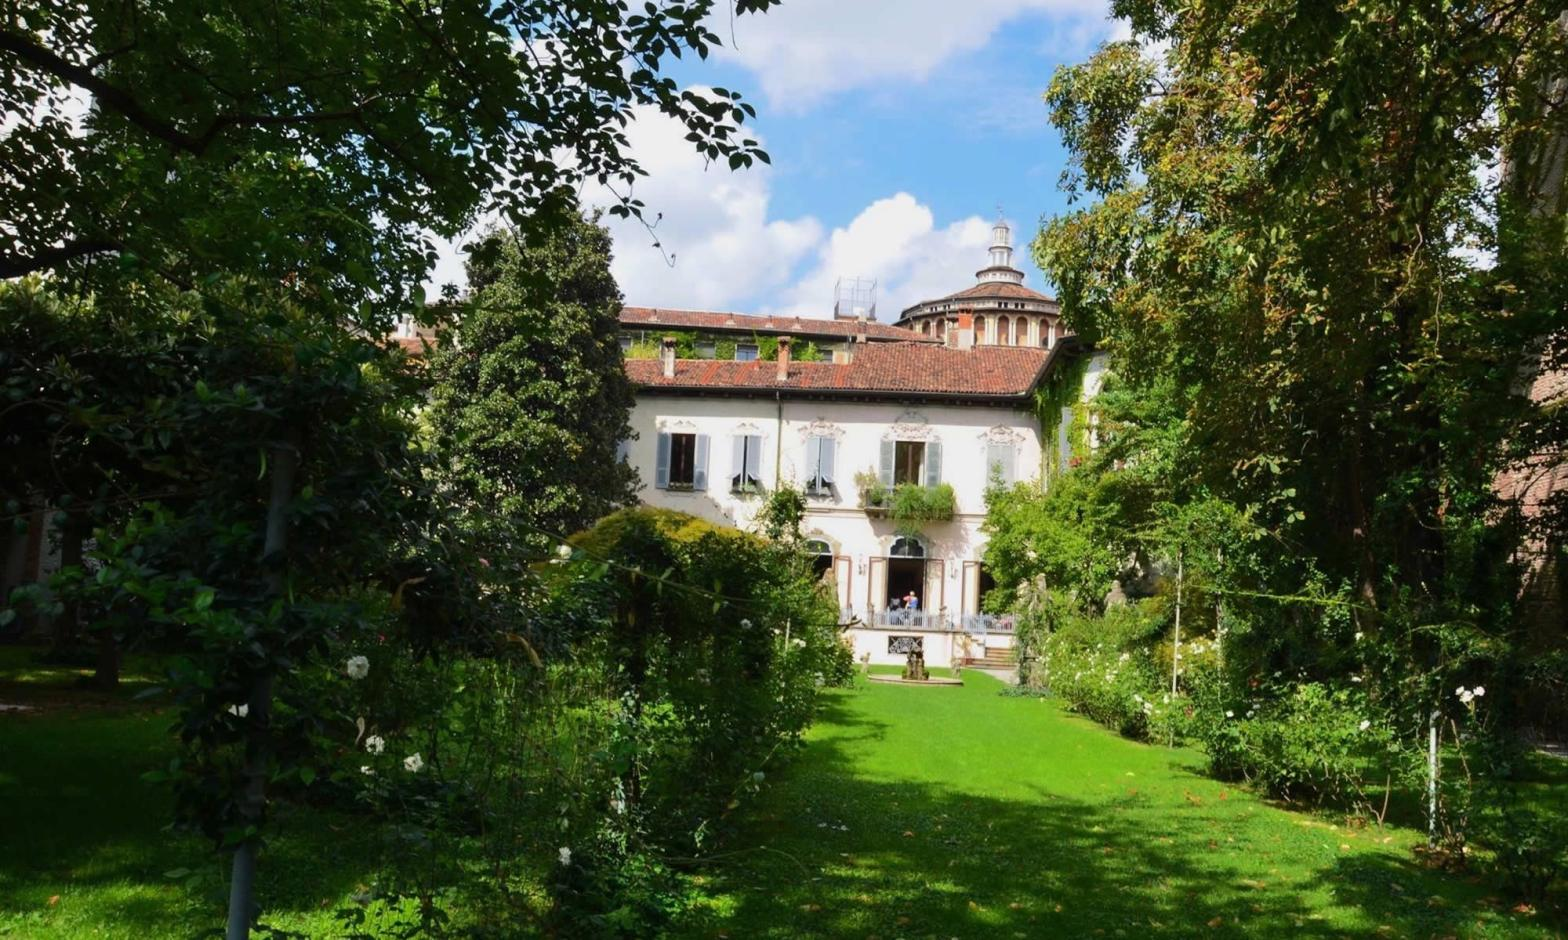 Leonardo da Vinci's vineyard, and a villa, in Milan, Italy.